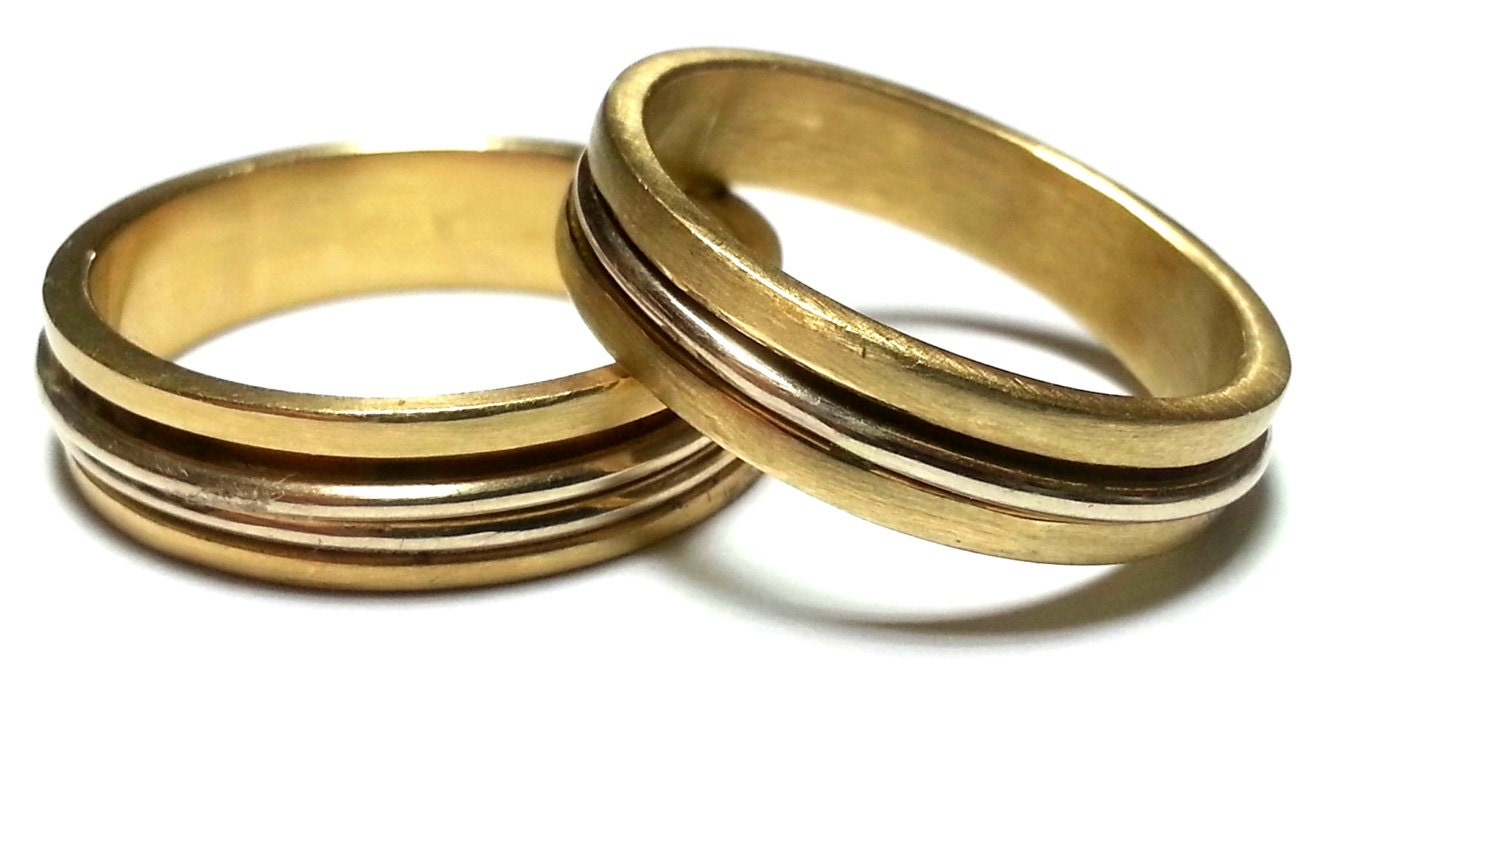 Matching Wedding Rings His And Hers Wedding Bands By JKASHI1889